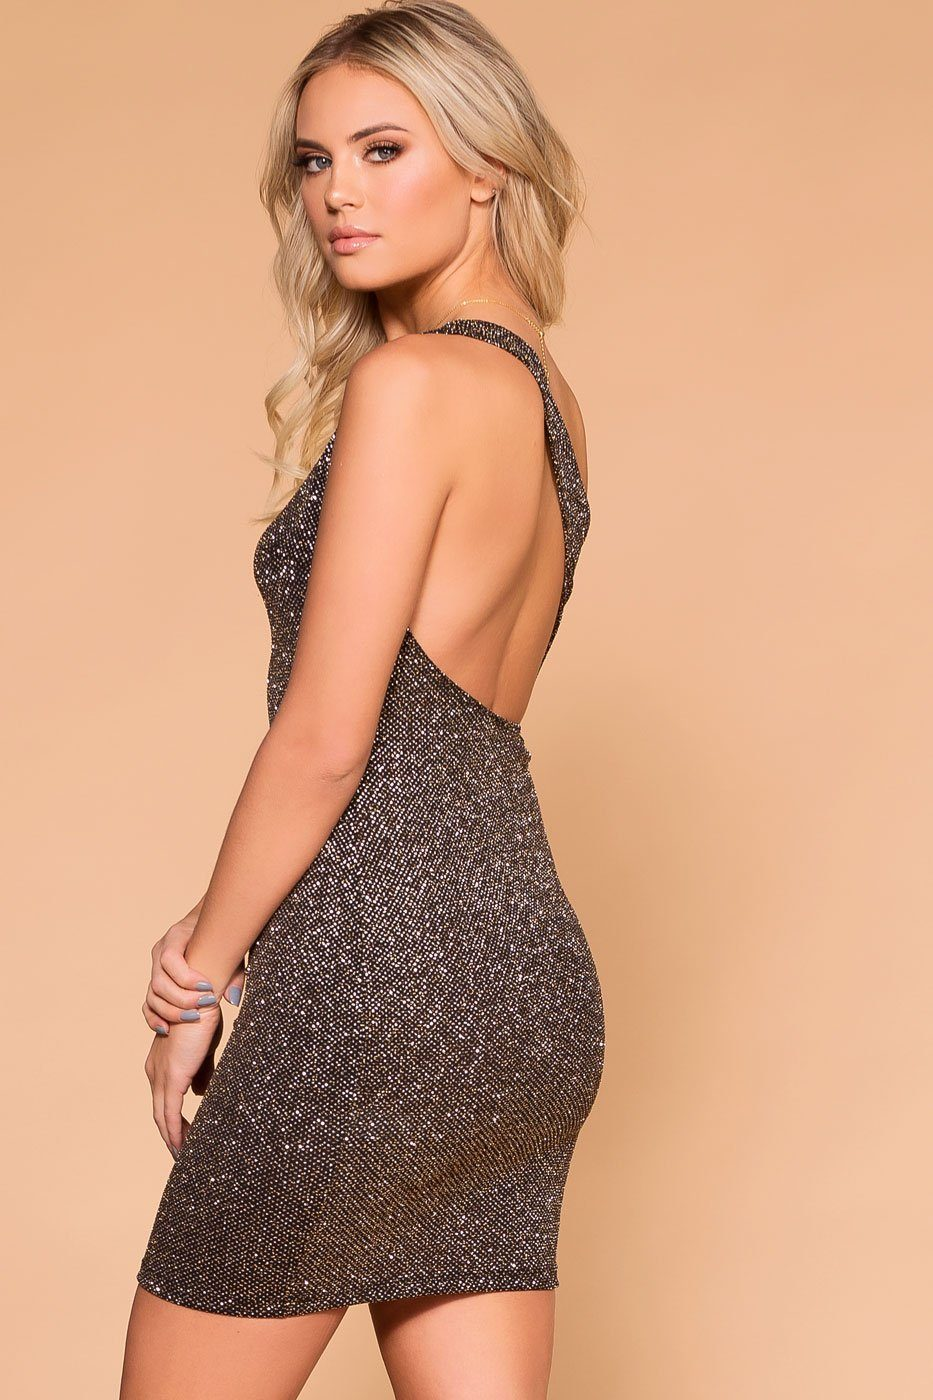 Priceless | Bronze Glitter | Bodycon Dress | Cocktail Dress | Womens